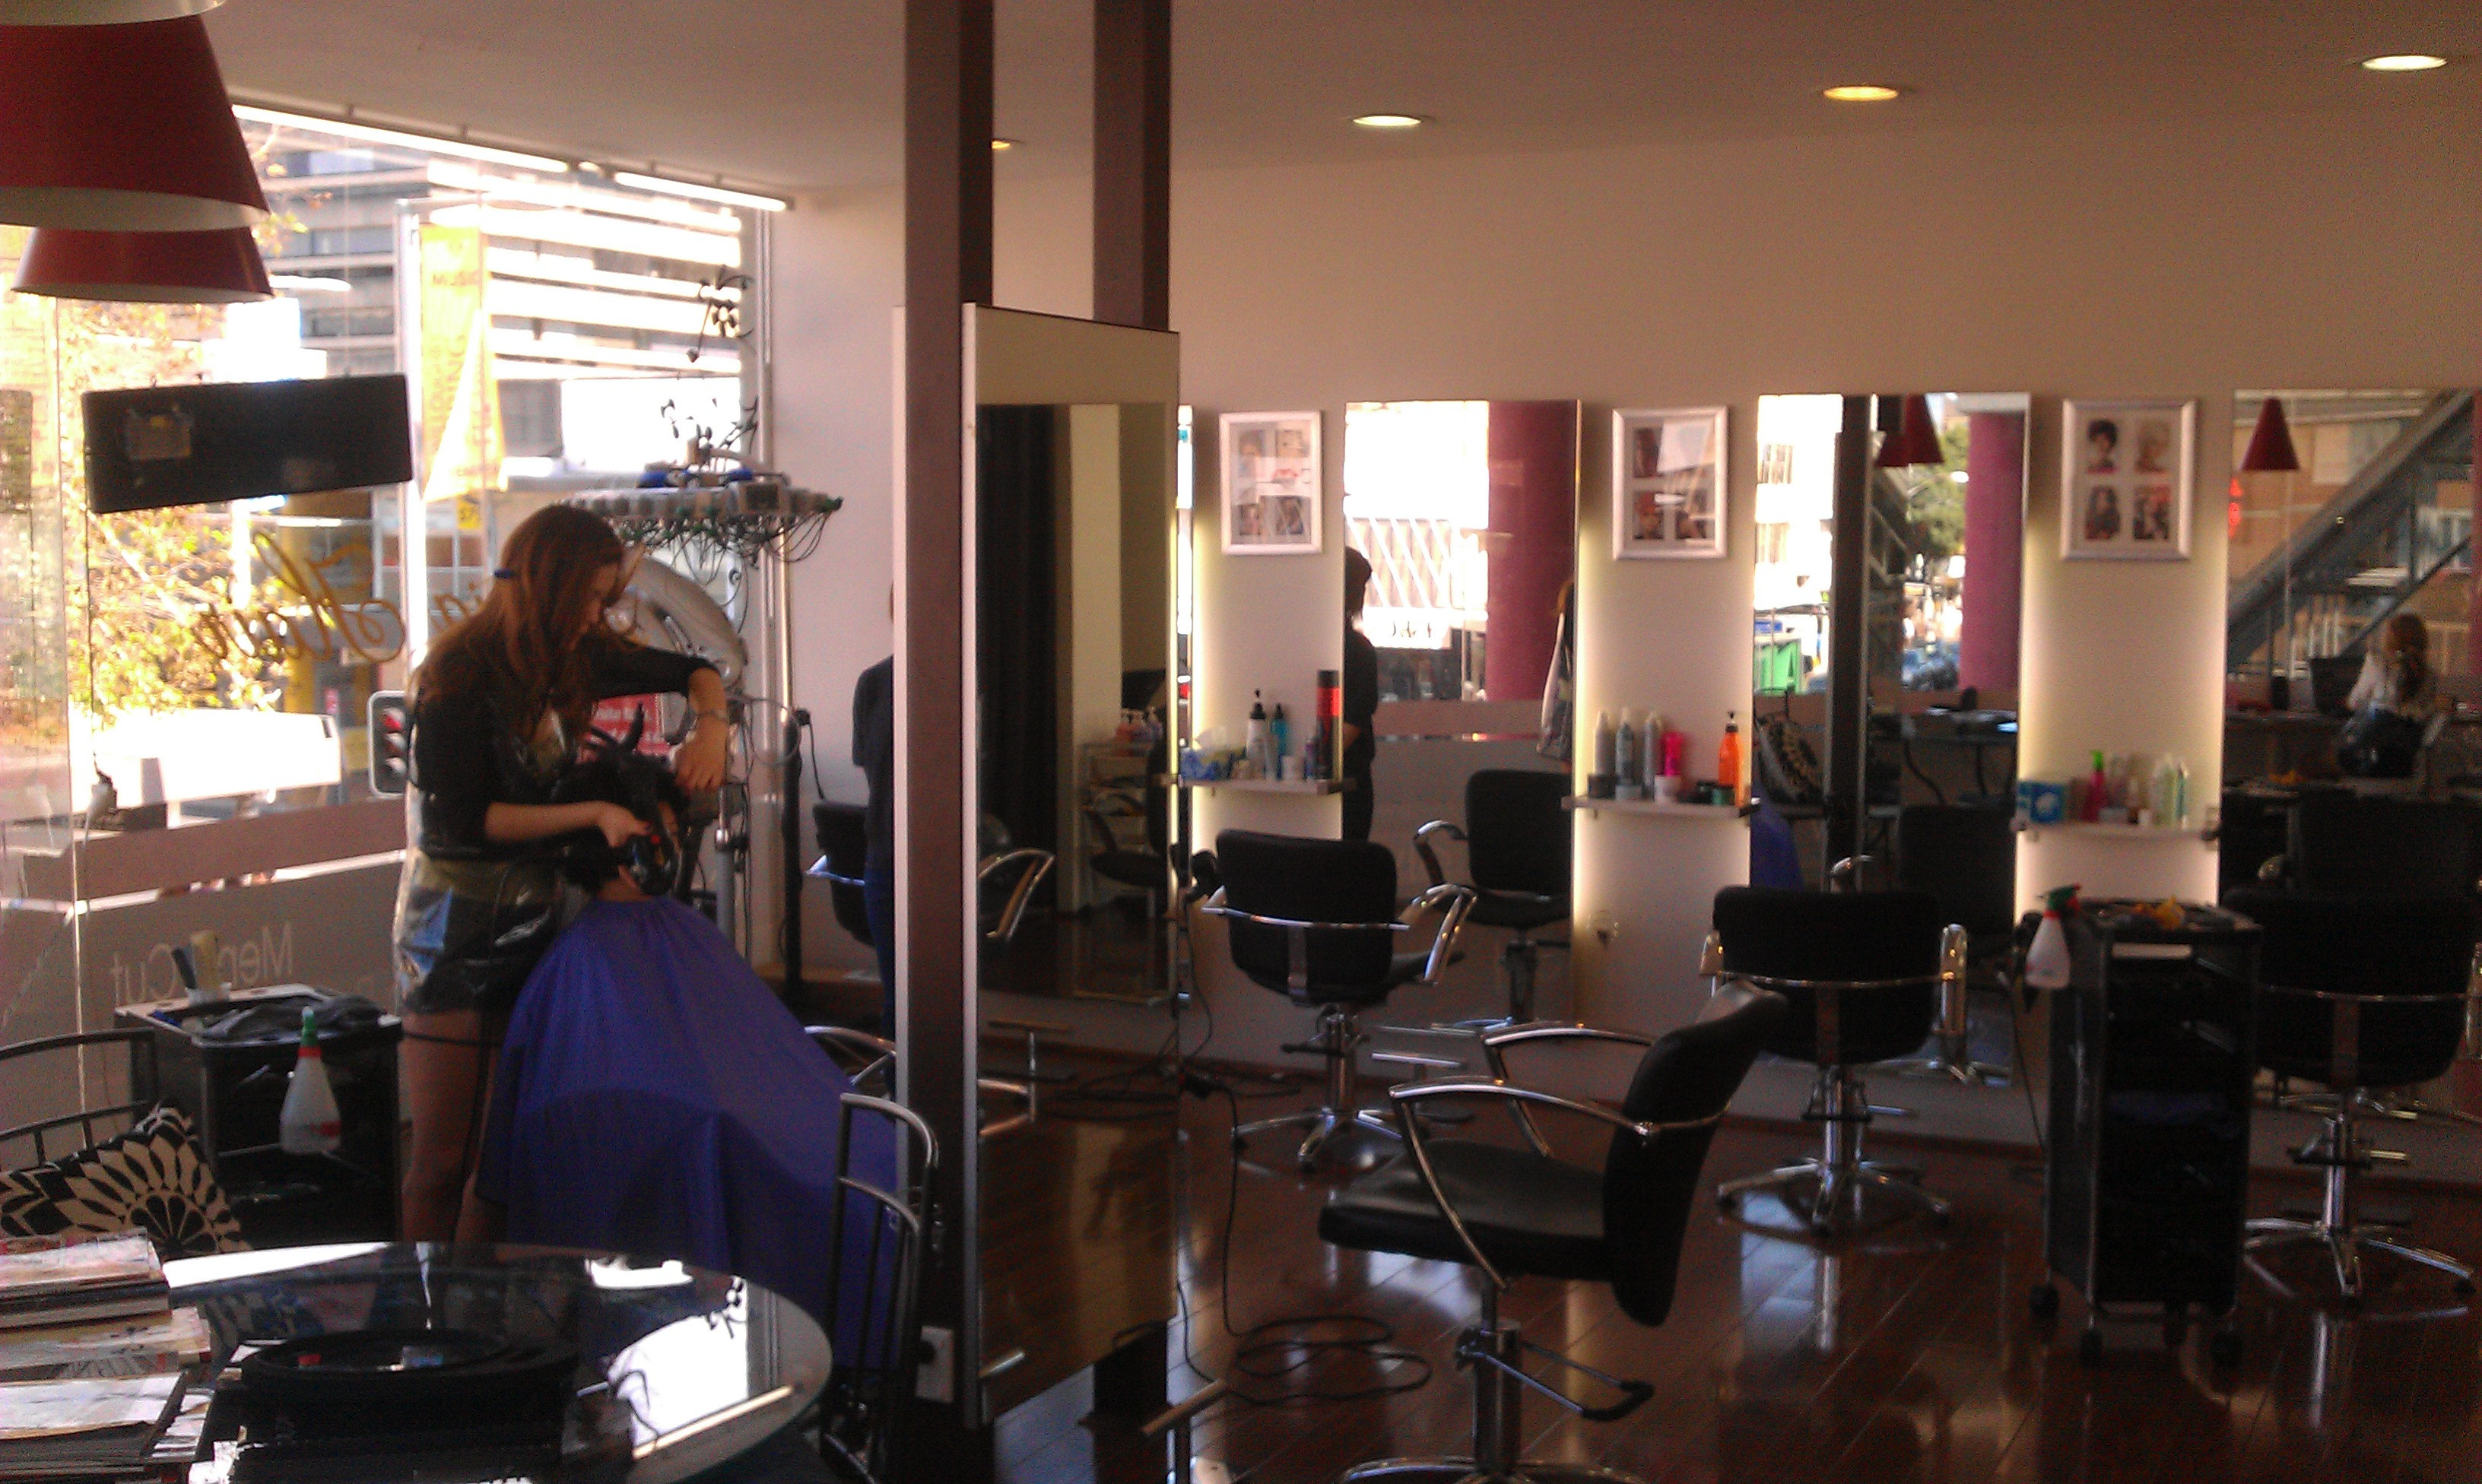 Victoria chatswood hair salon hair extensions sydney for Address beauty salon